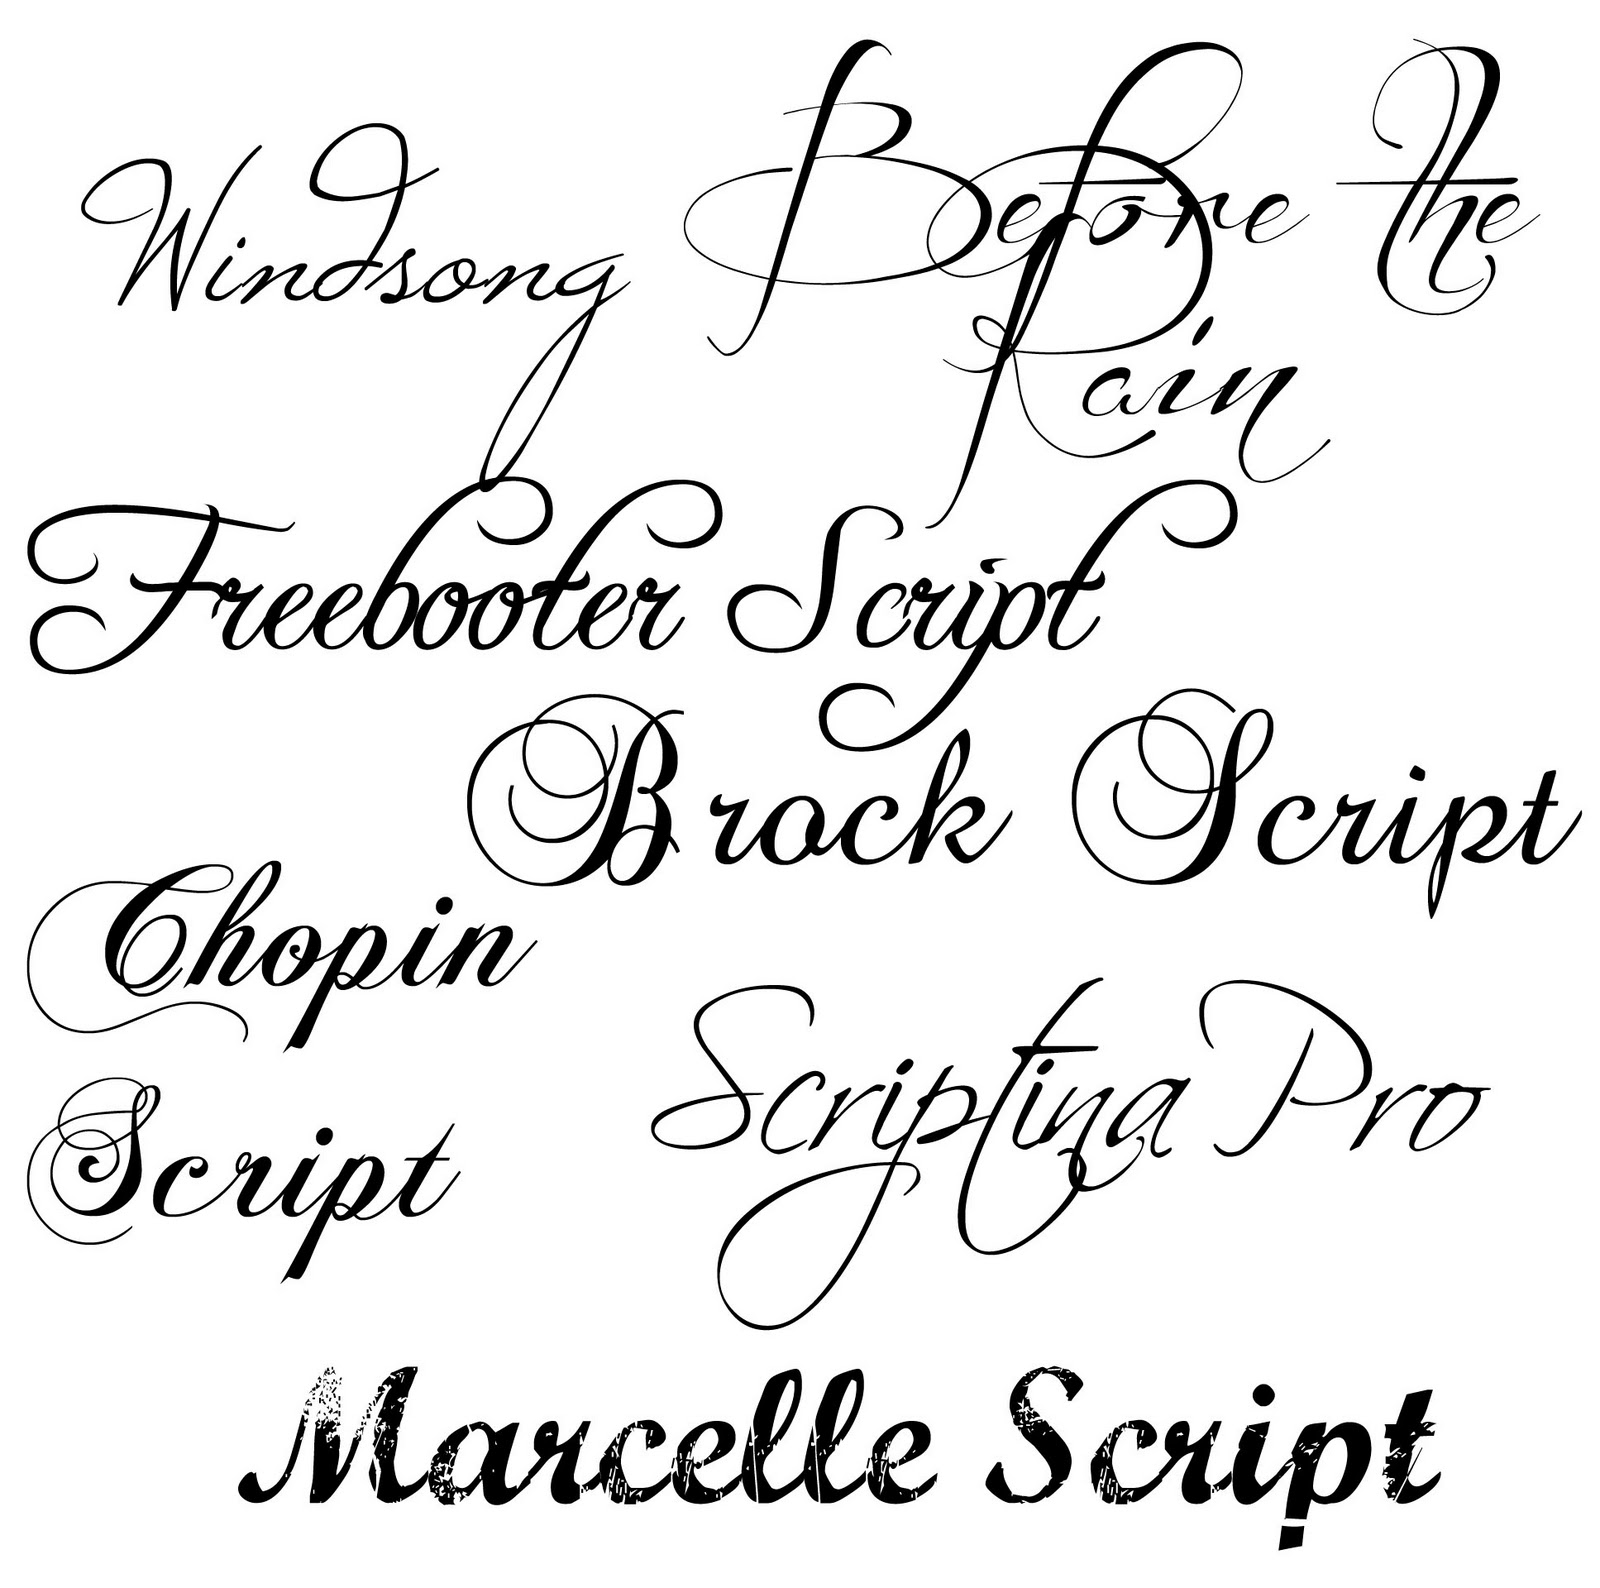 Md School Mrs Fabulous Fonts Fancy: calligraphy text